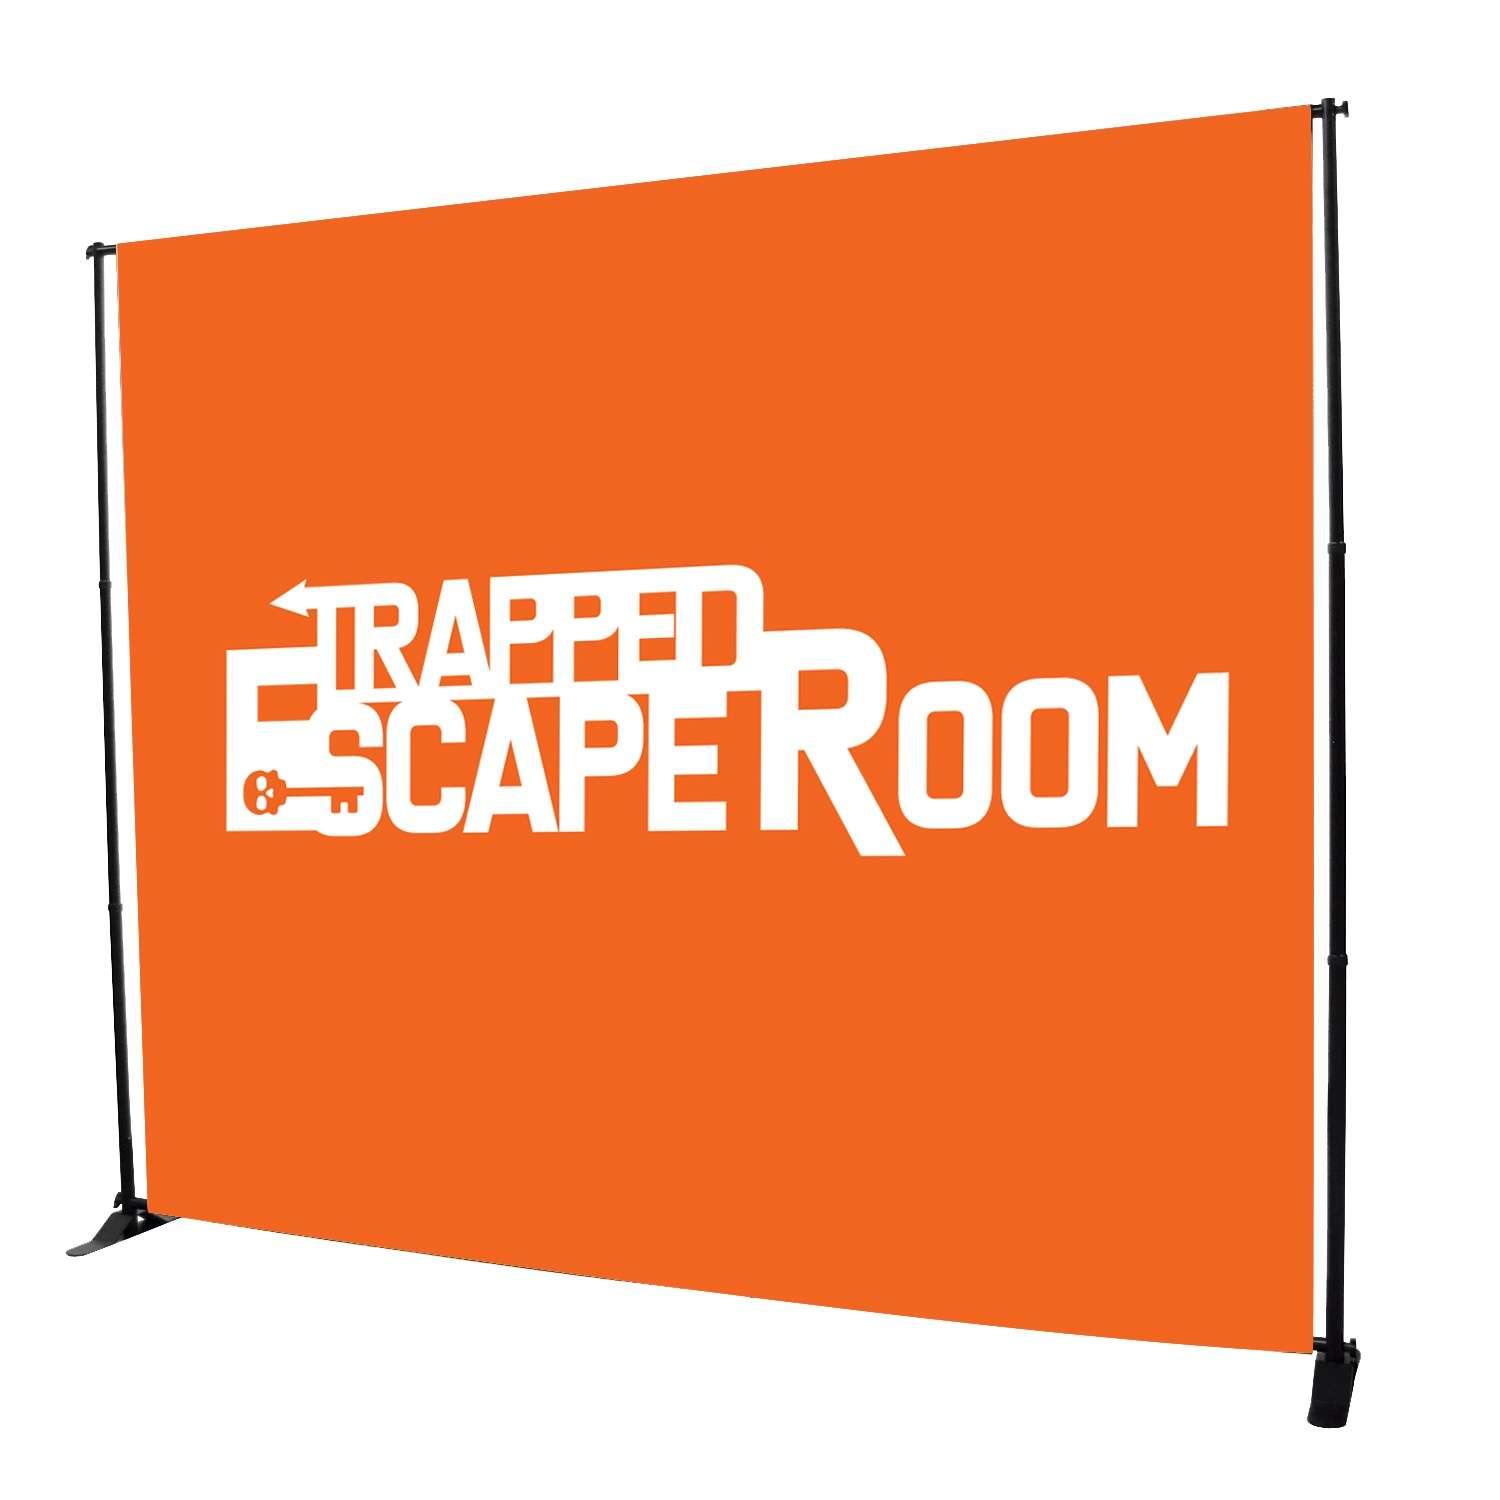 Escape Room And Red Flags